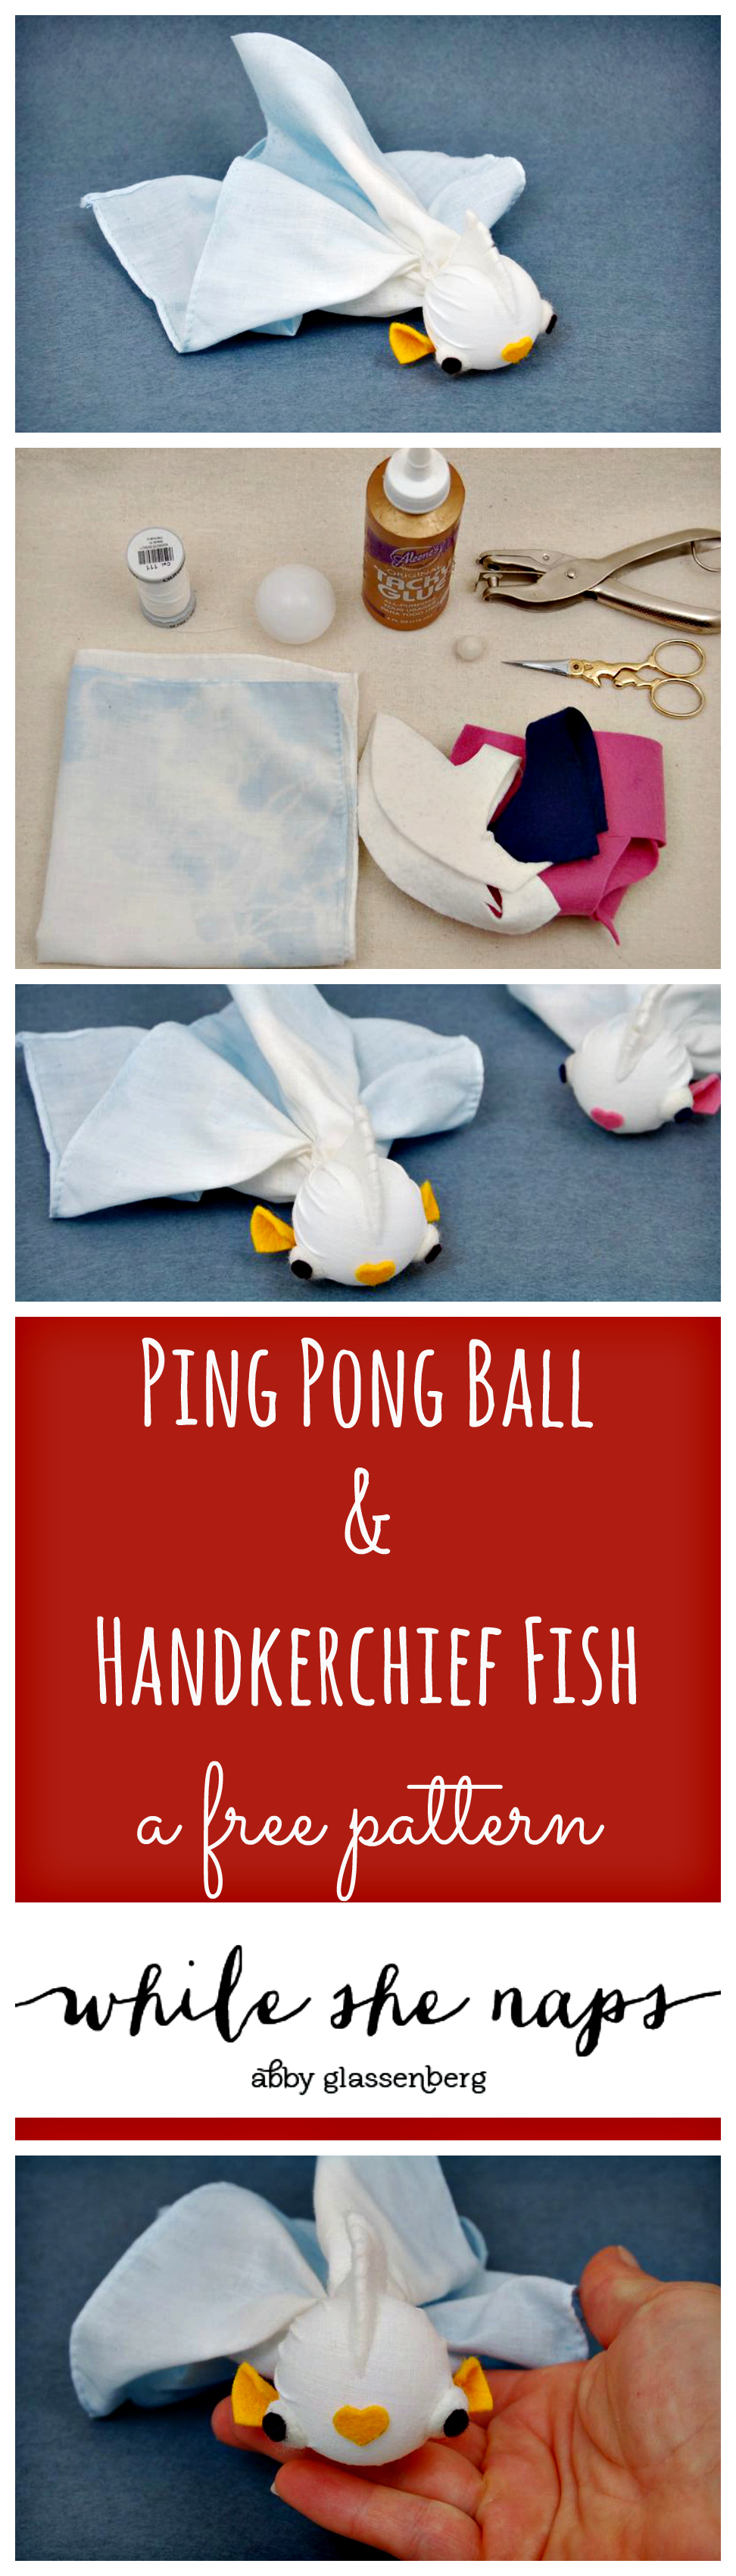 A free pattern for a fun fish made from a ping pong ball and handkerchief.